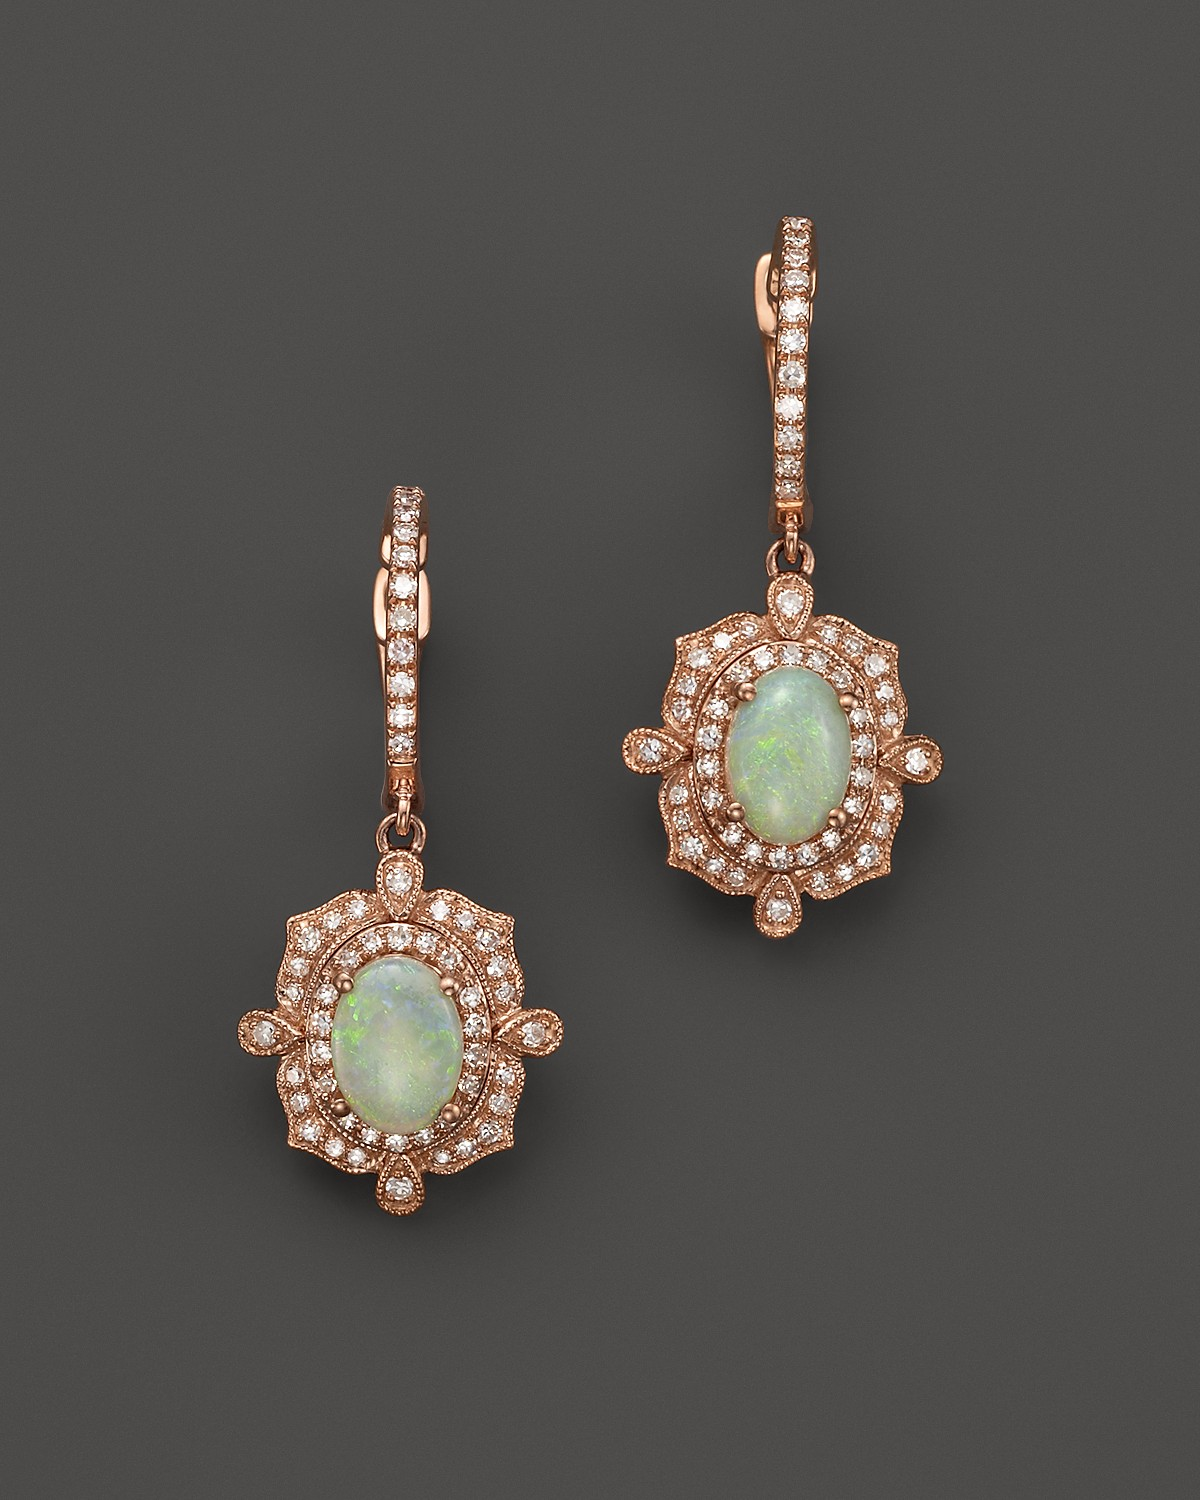 Brand-new Opal and Diamond Antique Inspired Drop Earrings in 14K Rose Gold  QV31